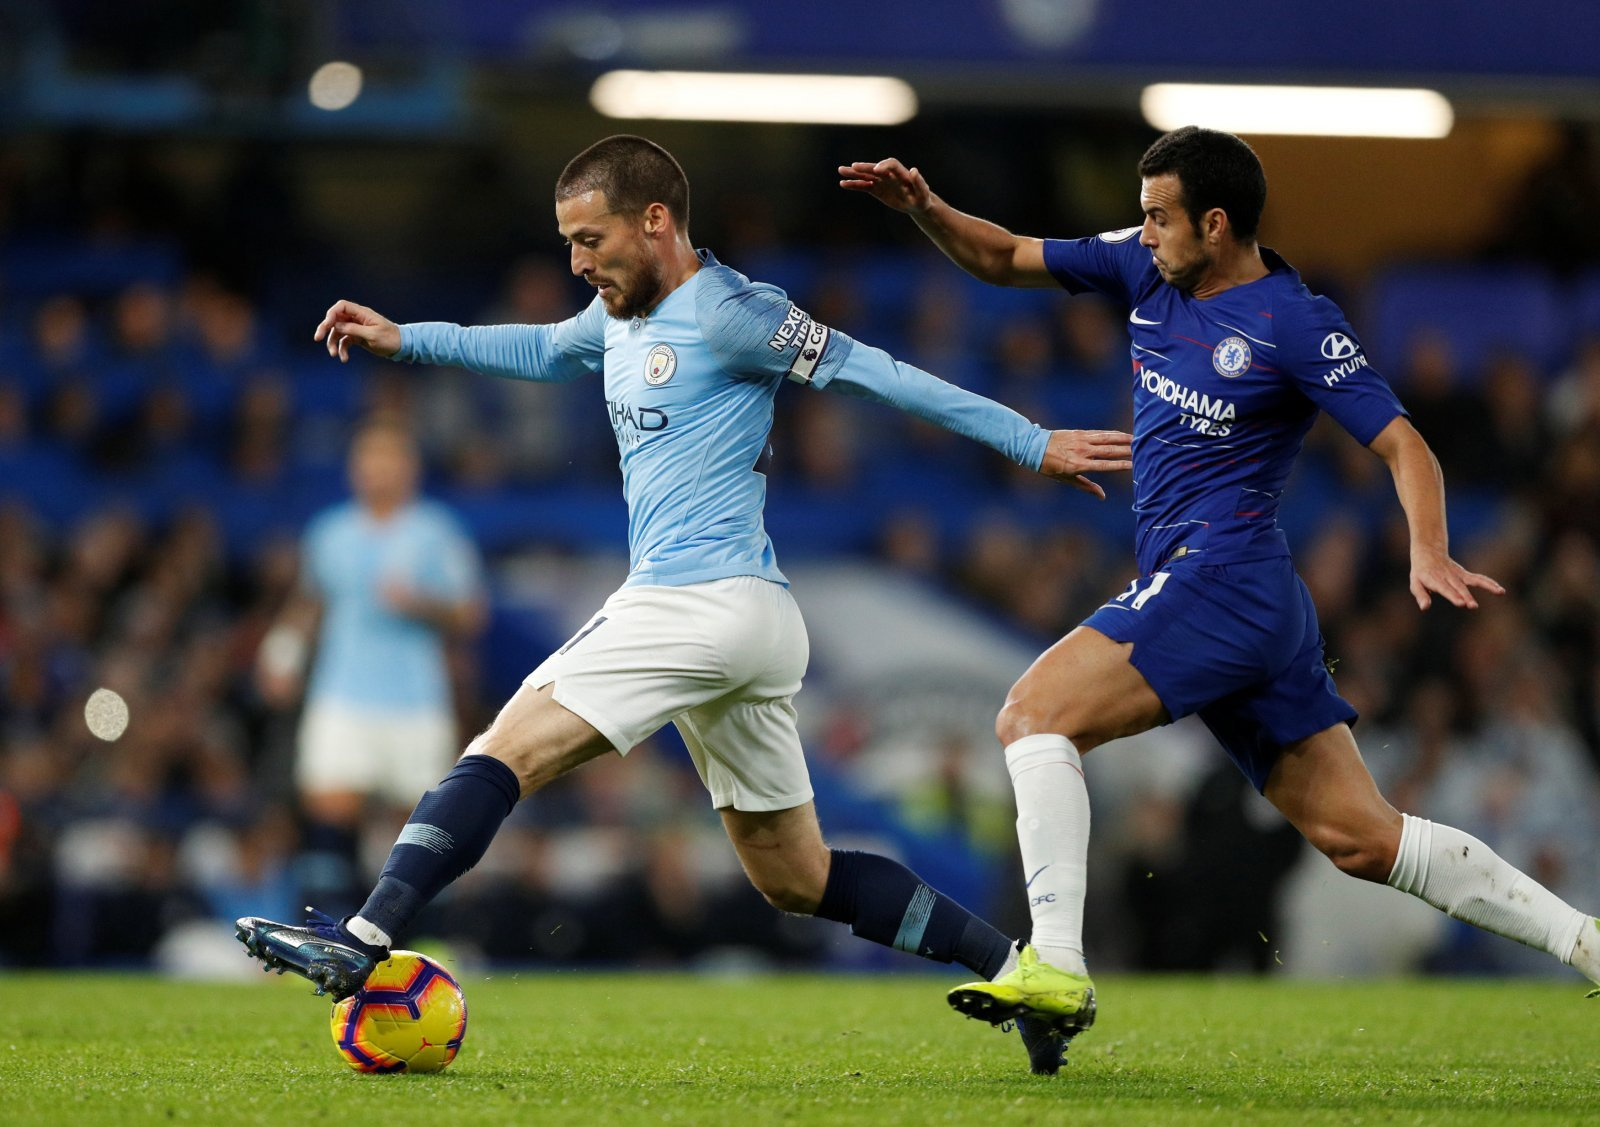 Opinion: Manchester City have their toughest decision to come in case of 33-year-old midfielder